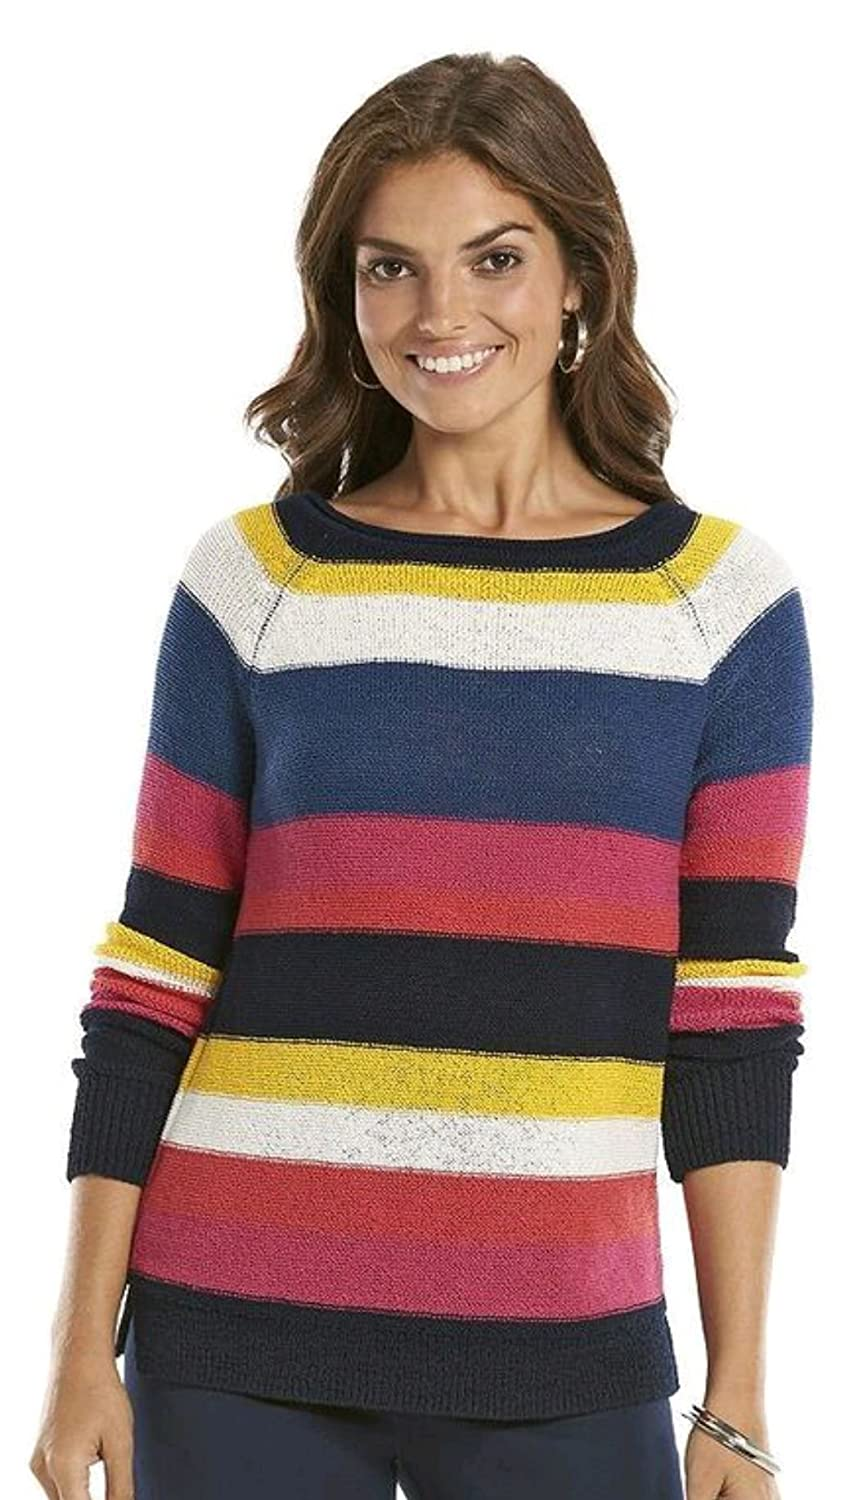 a392058836e4f Chaps Women s Striped Boatneck Sweater at Amazon Women s Clothing store